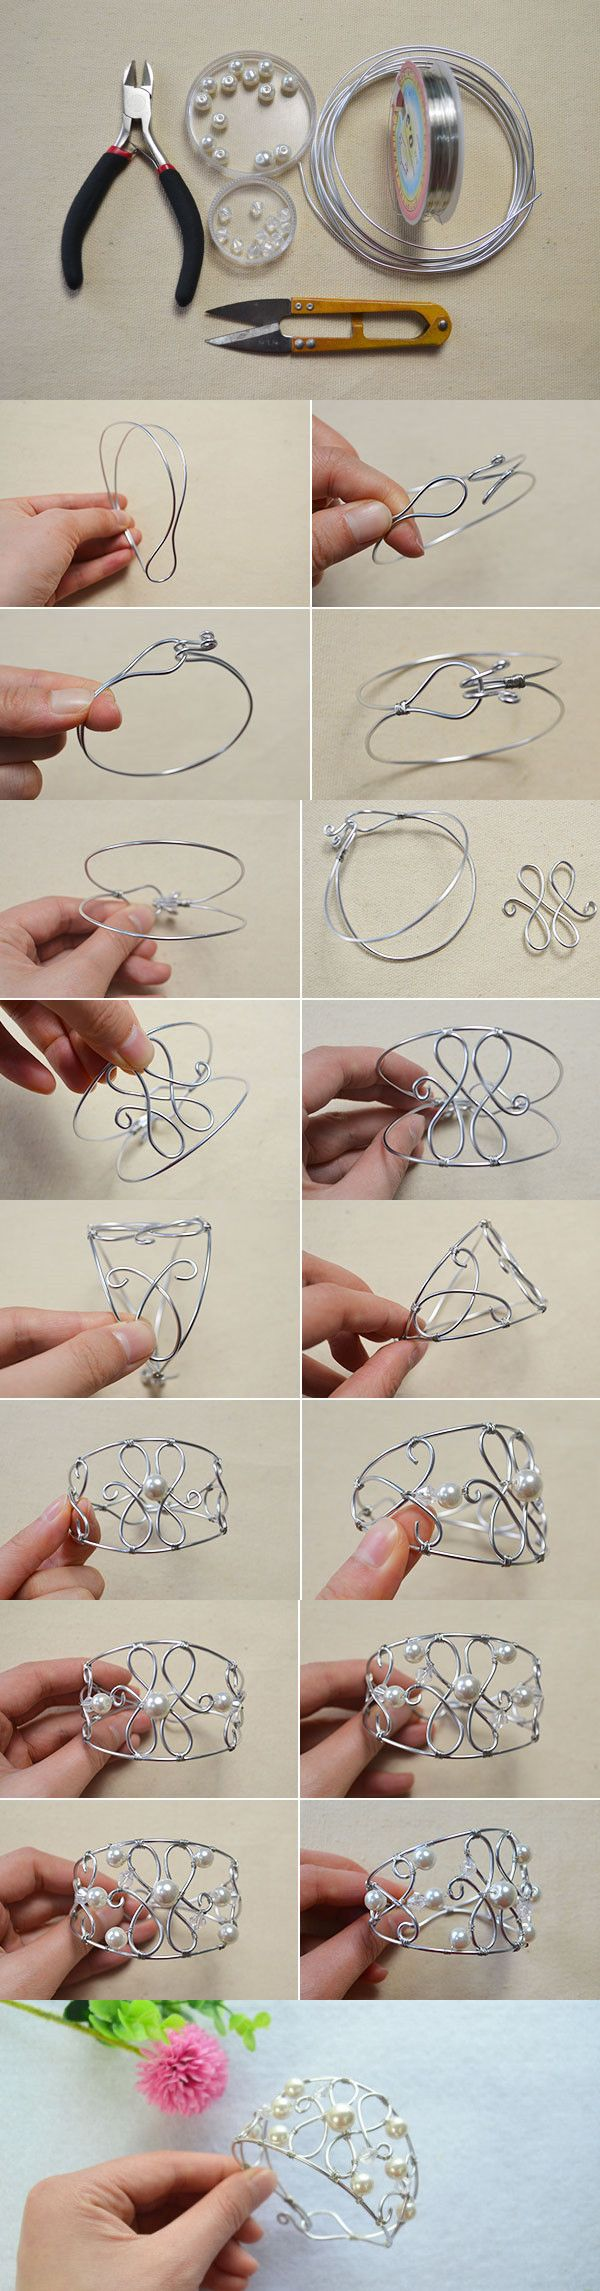 Tutorial on How to Make Woven Bracelet with Pearls and Silver Wires- A Particular Gift for Your Best Friend from LC.Pandahall.com